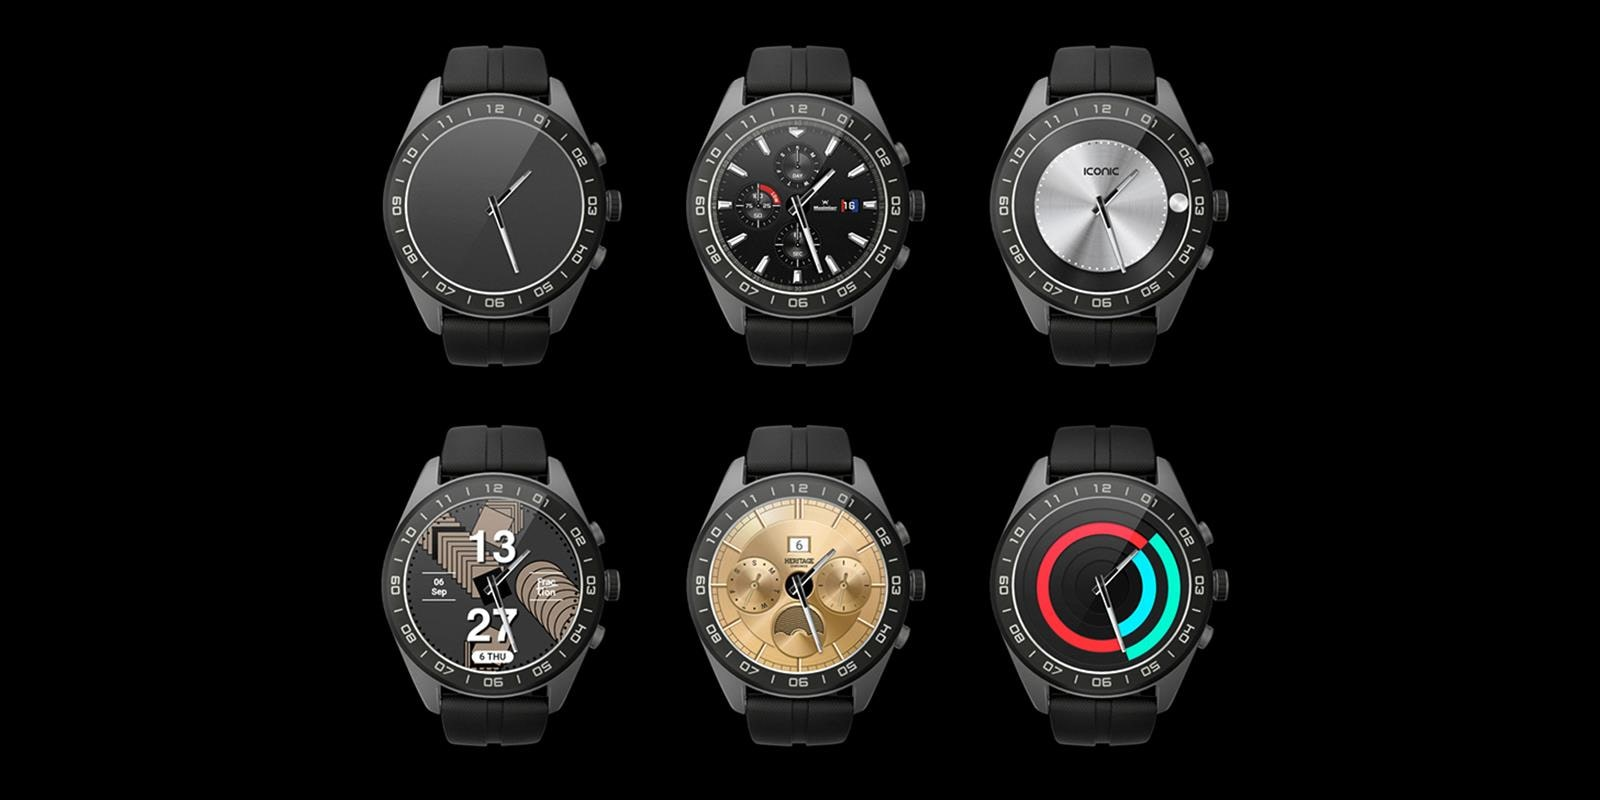 Choose your own watch face to suit your style with the all new LG Watch W7 | More at LG MAGAZINE